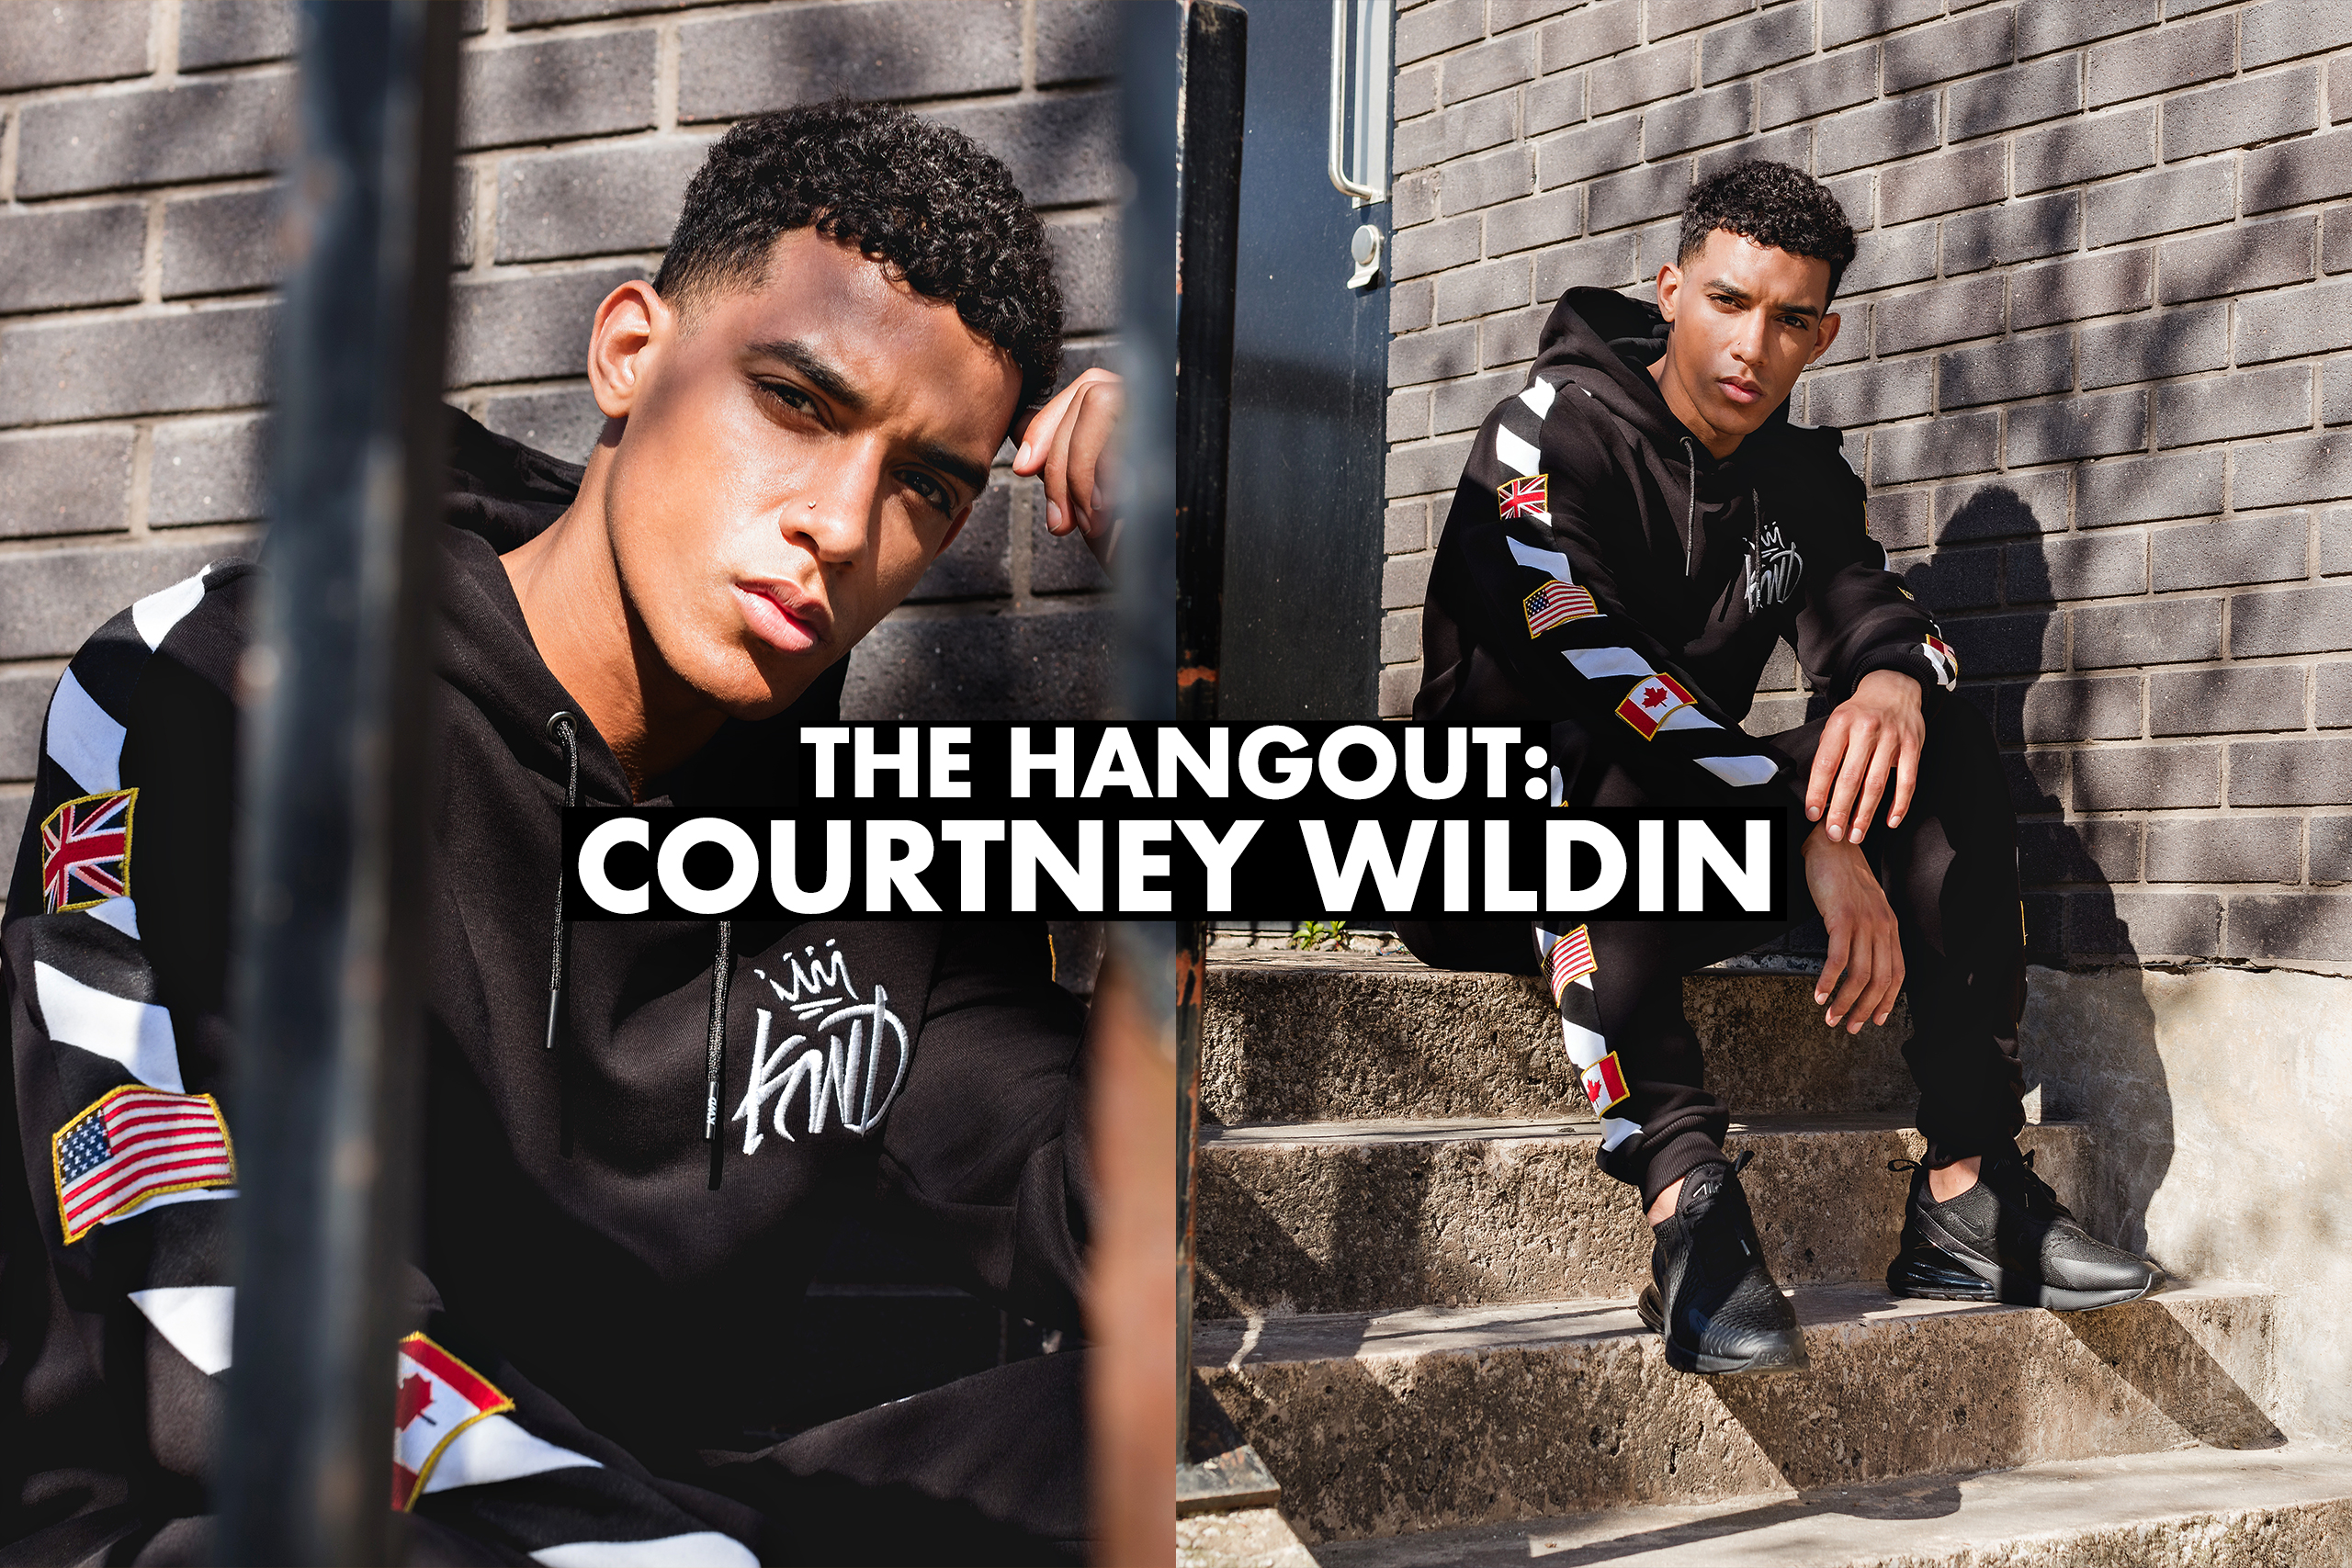 The Hangout: Courtney Wildin